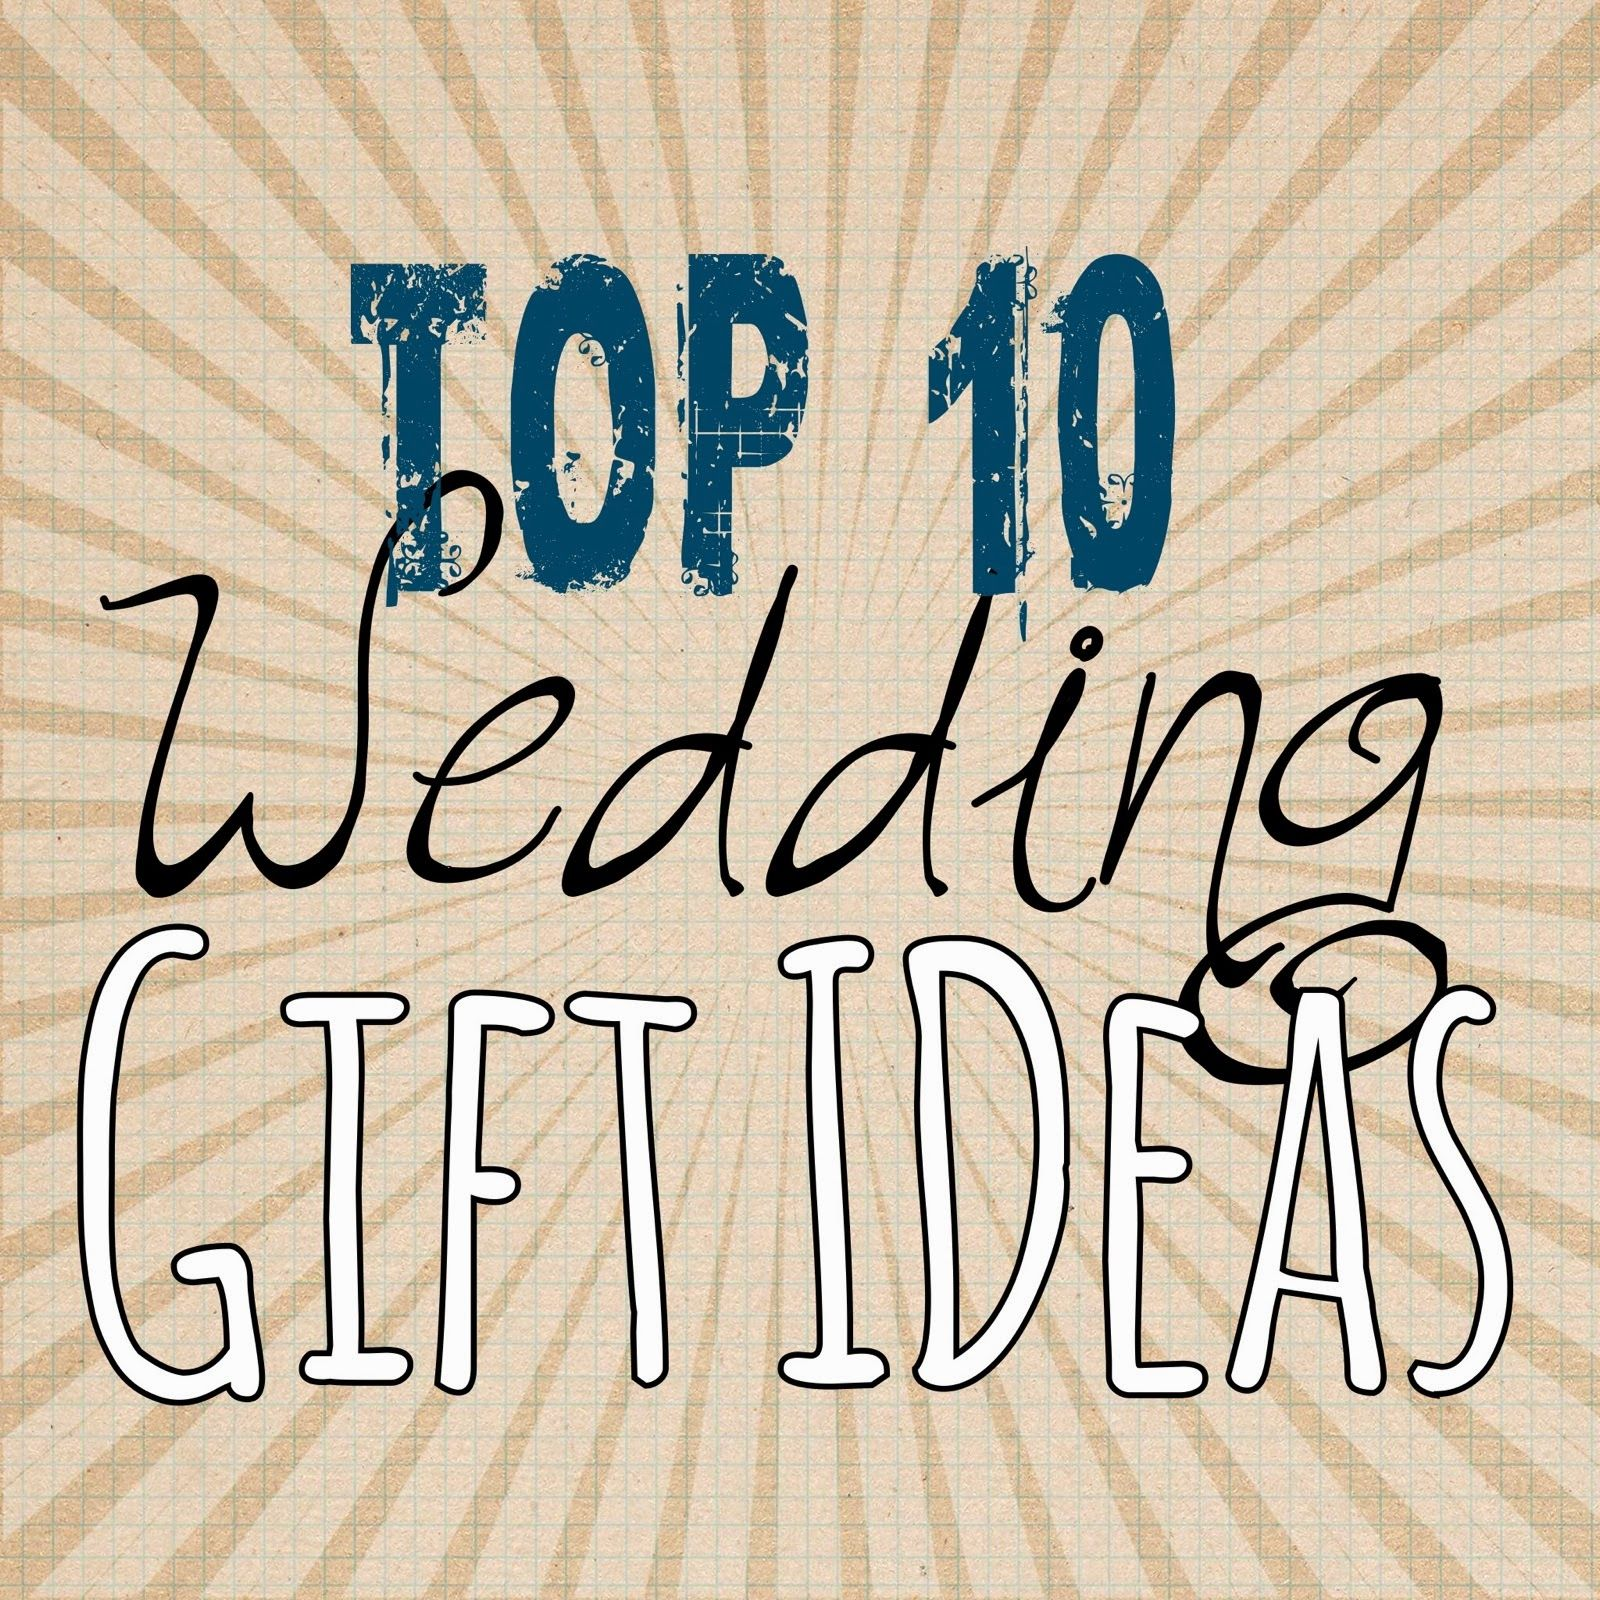 Great Wedding Gift Ideas: Wedding Gifts Ideas Regarding Interest Event Category For